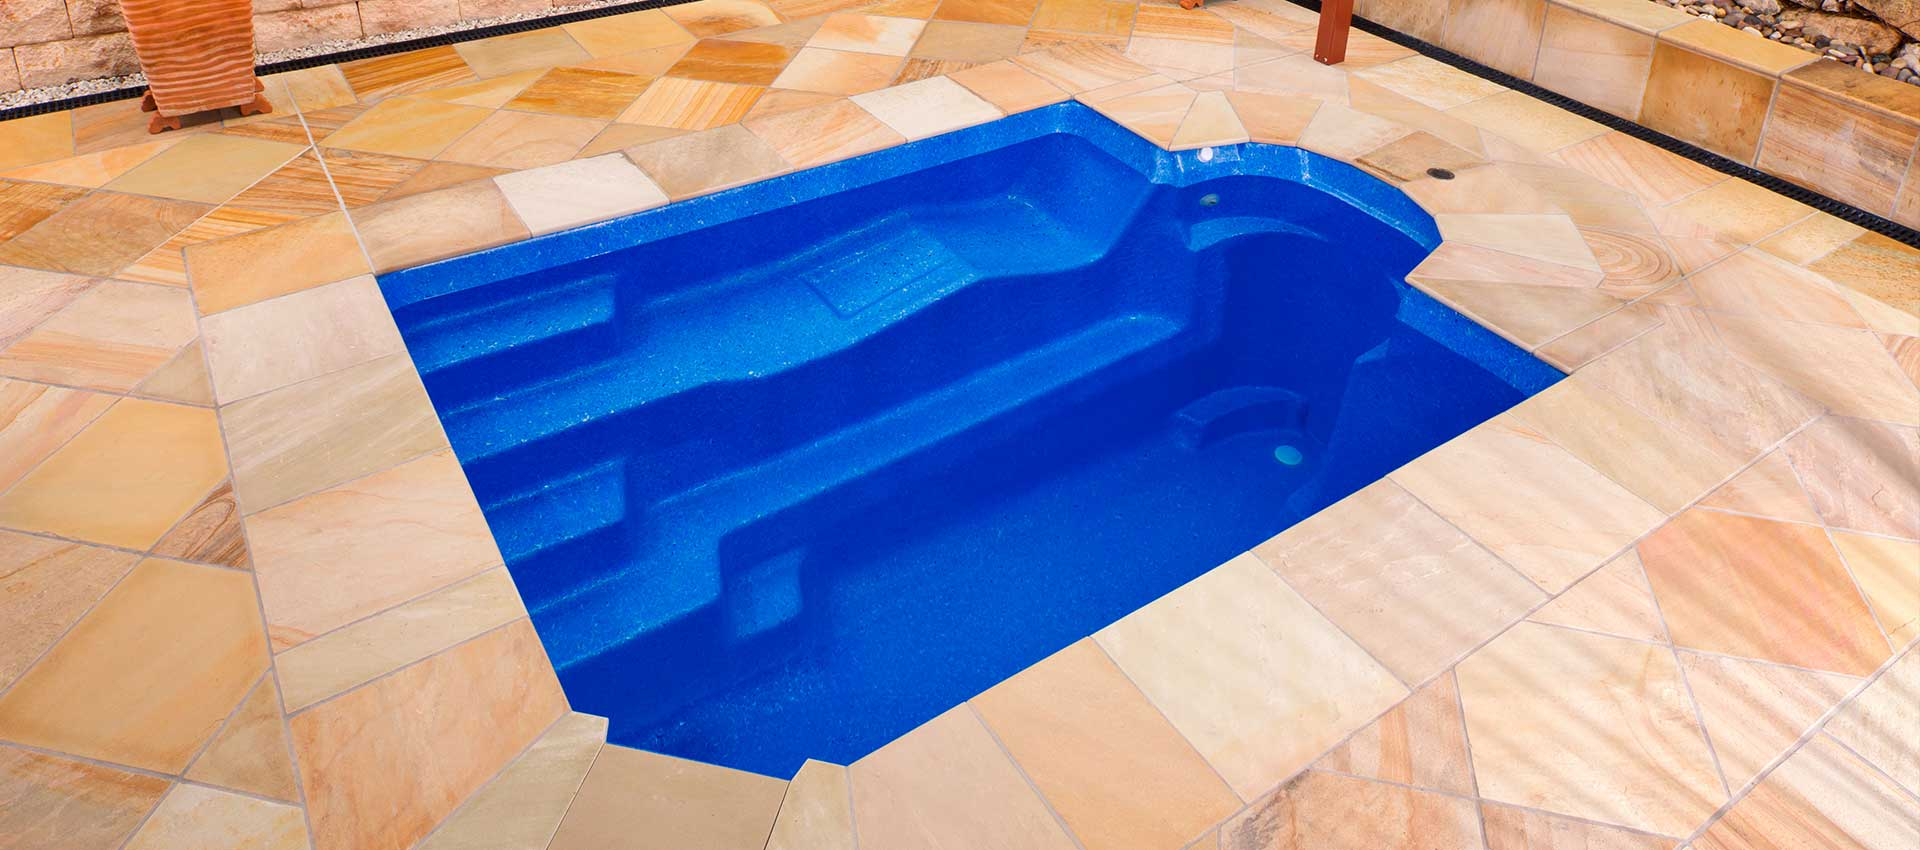 Kimberley Plunge pool with travertine paving